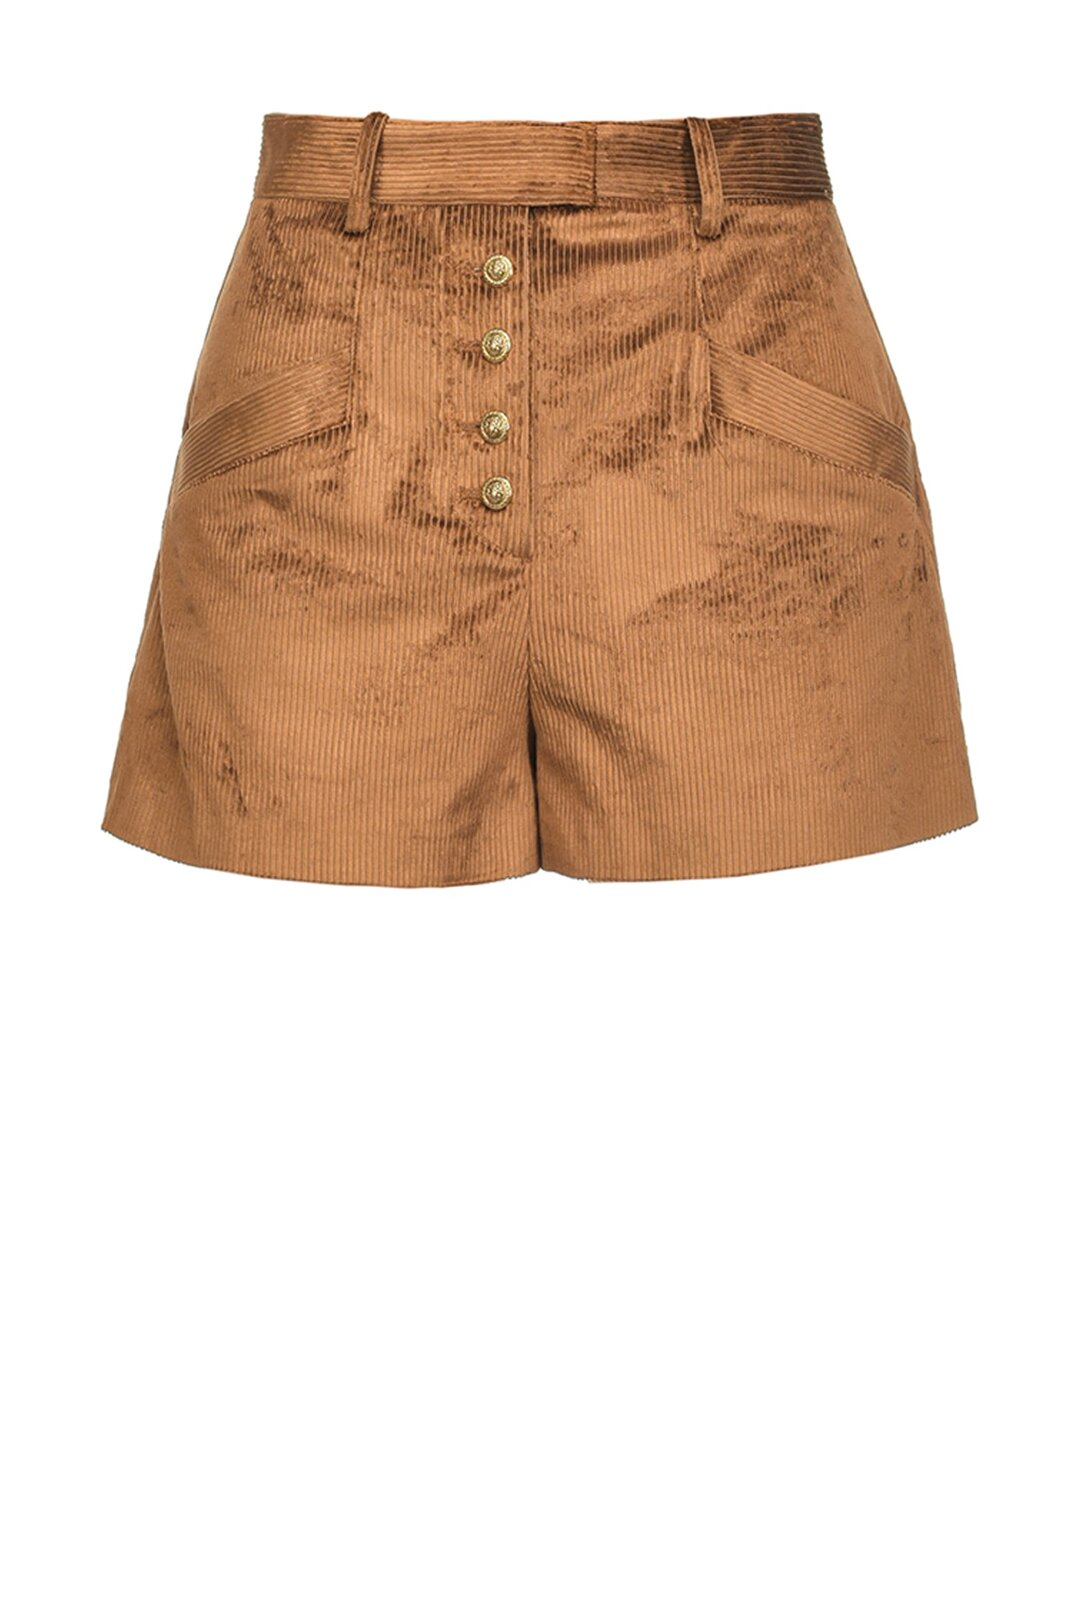 Shorts Ampi In Velluto A Coste - Pinko